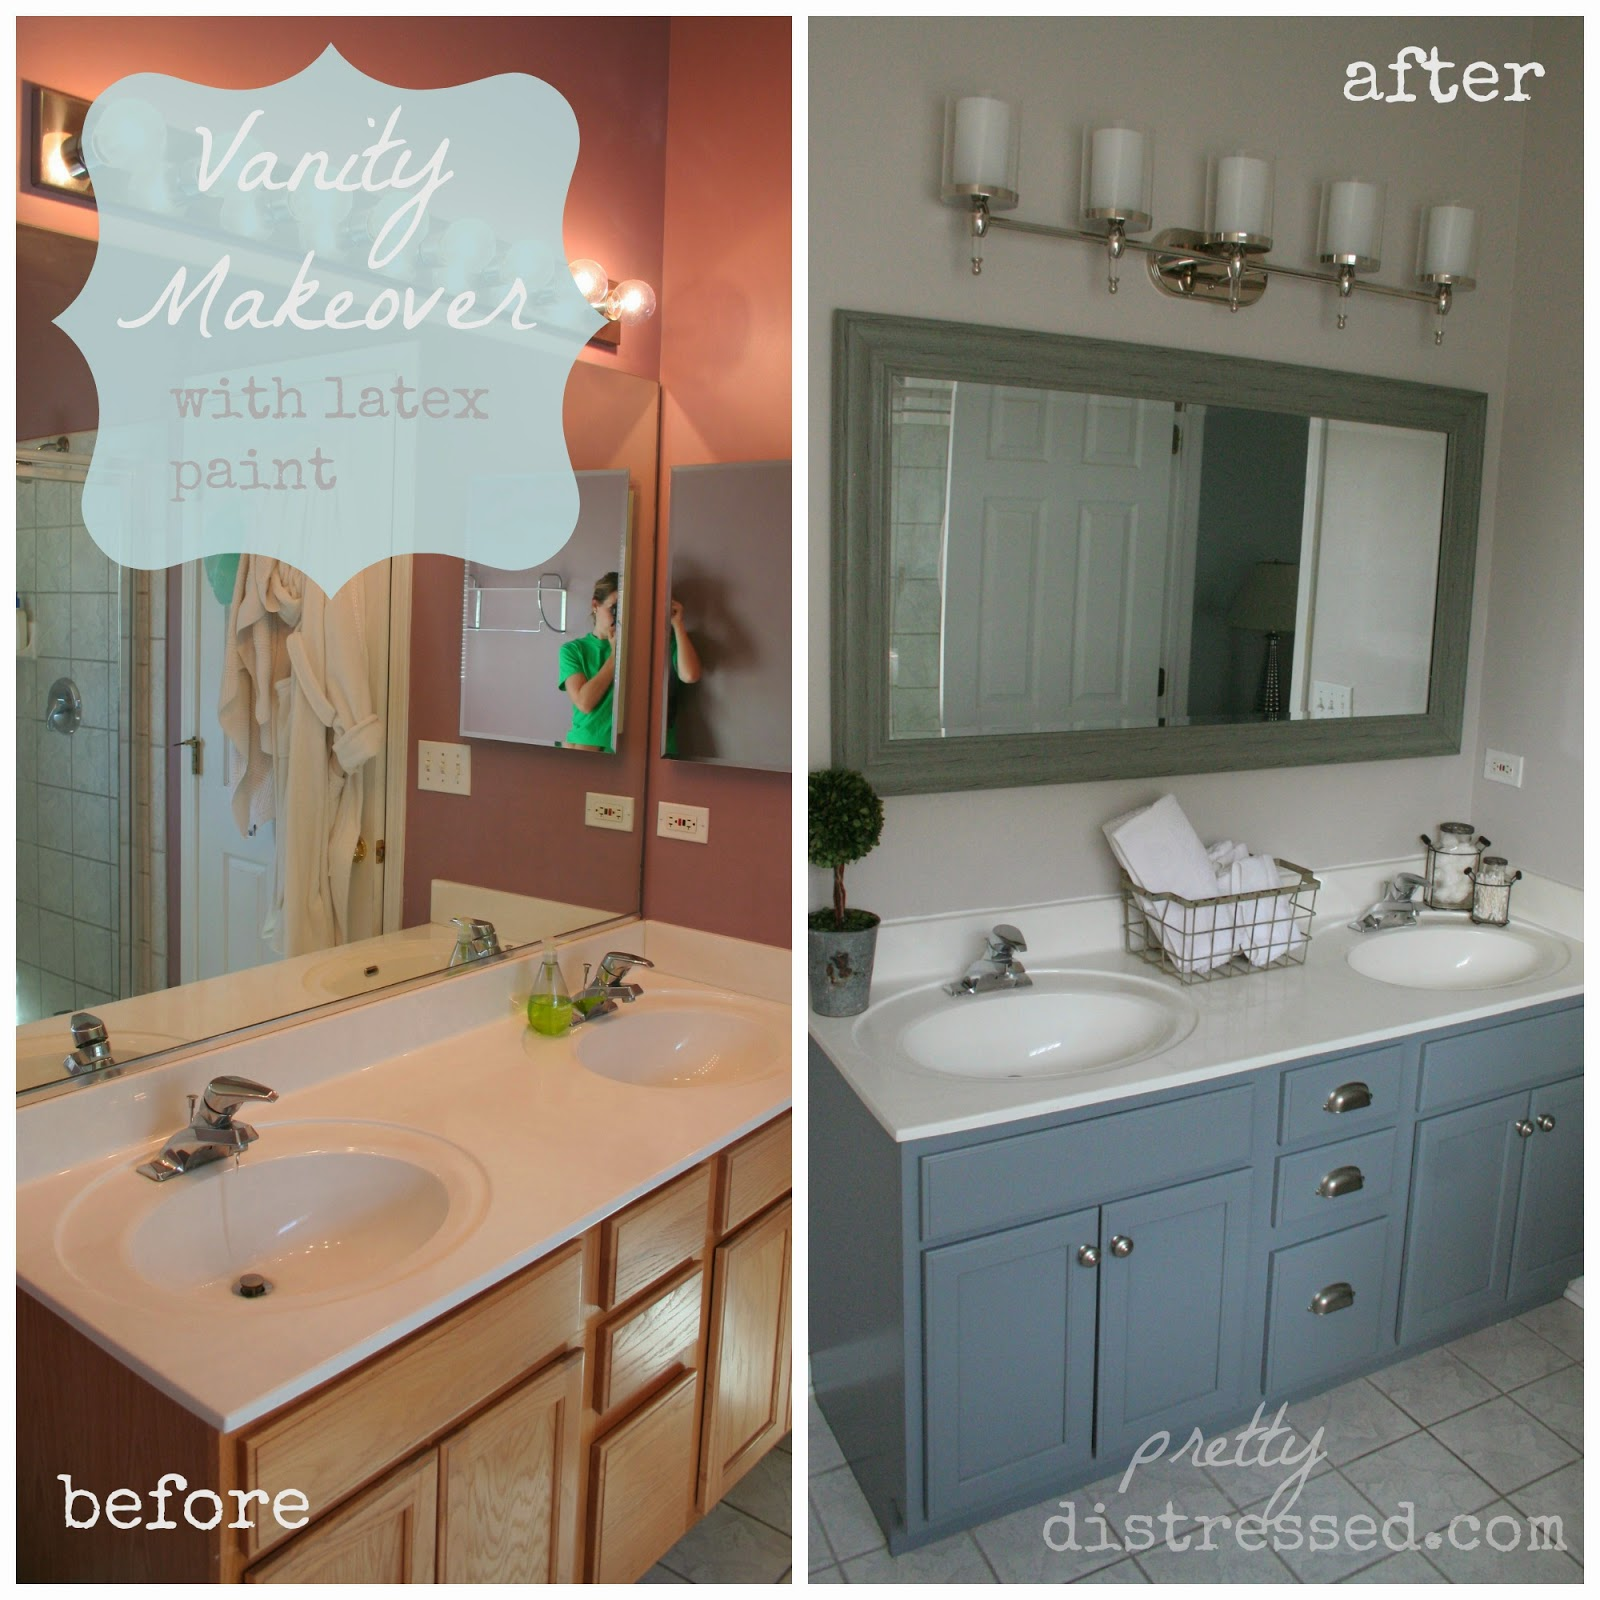 Cool Bathroom Vanity Makeover with Latex Paint